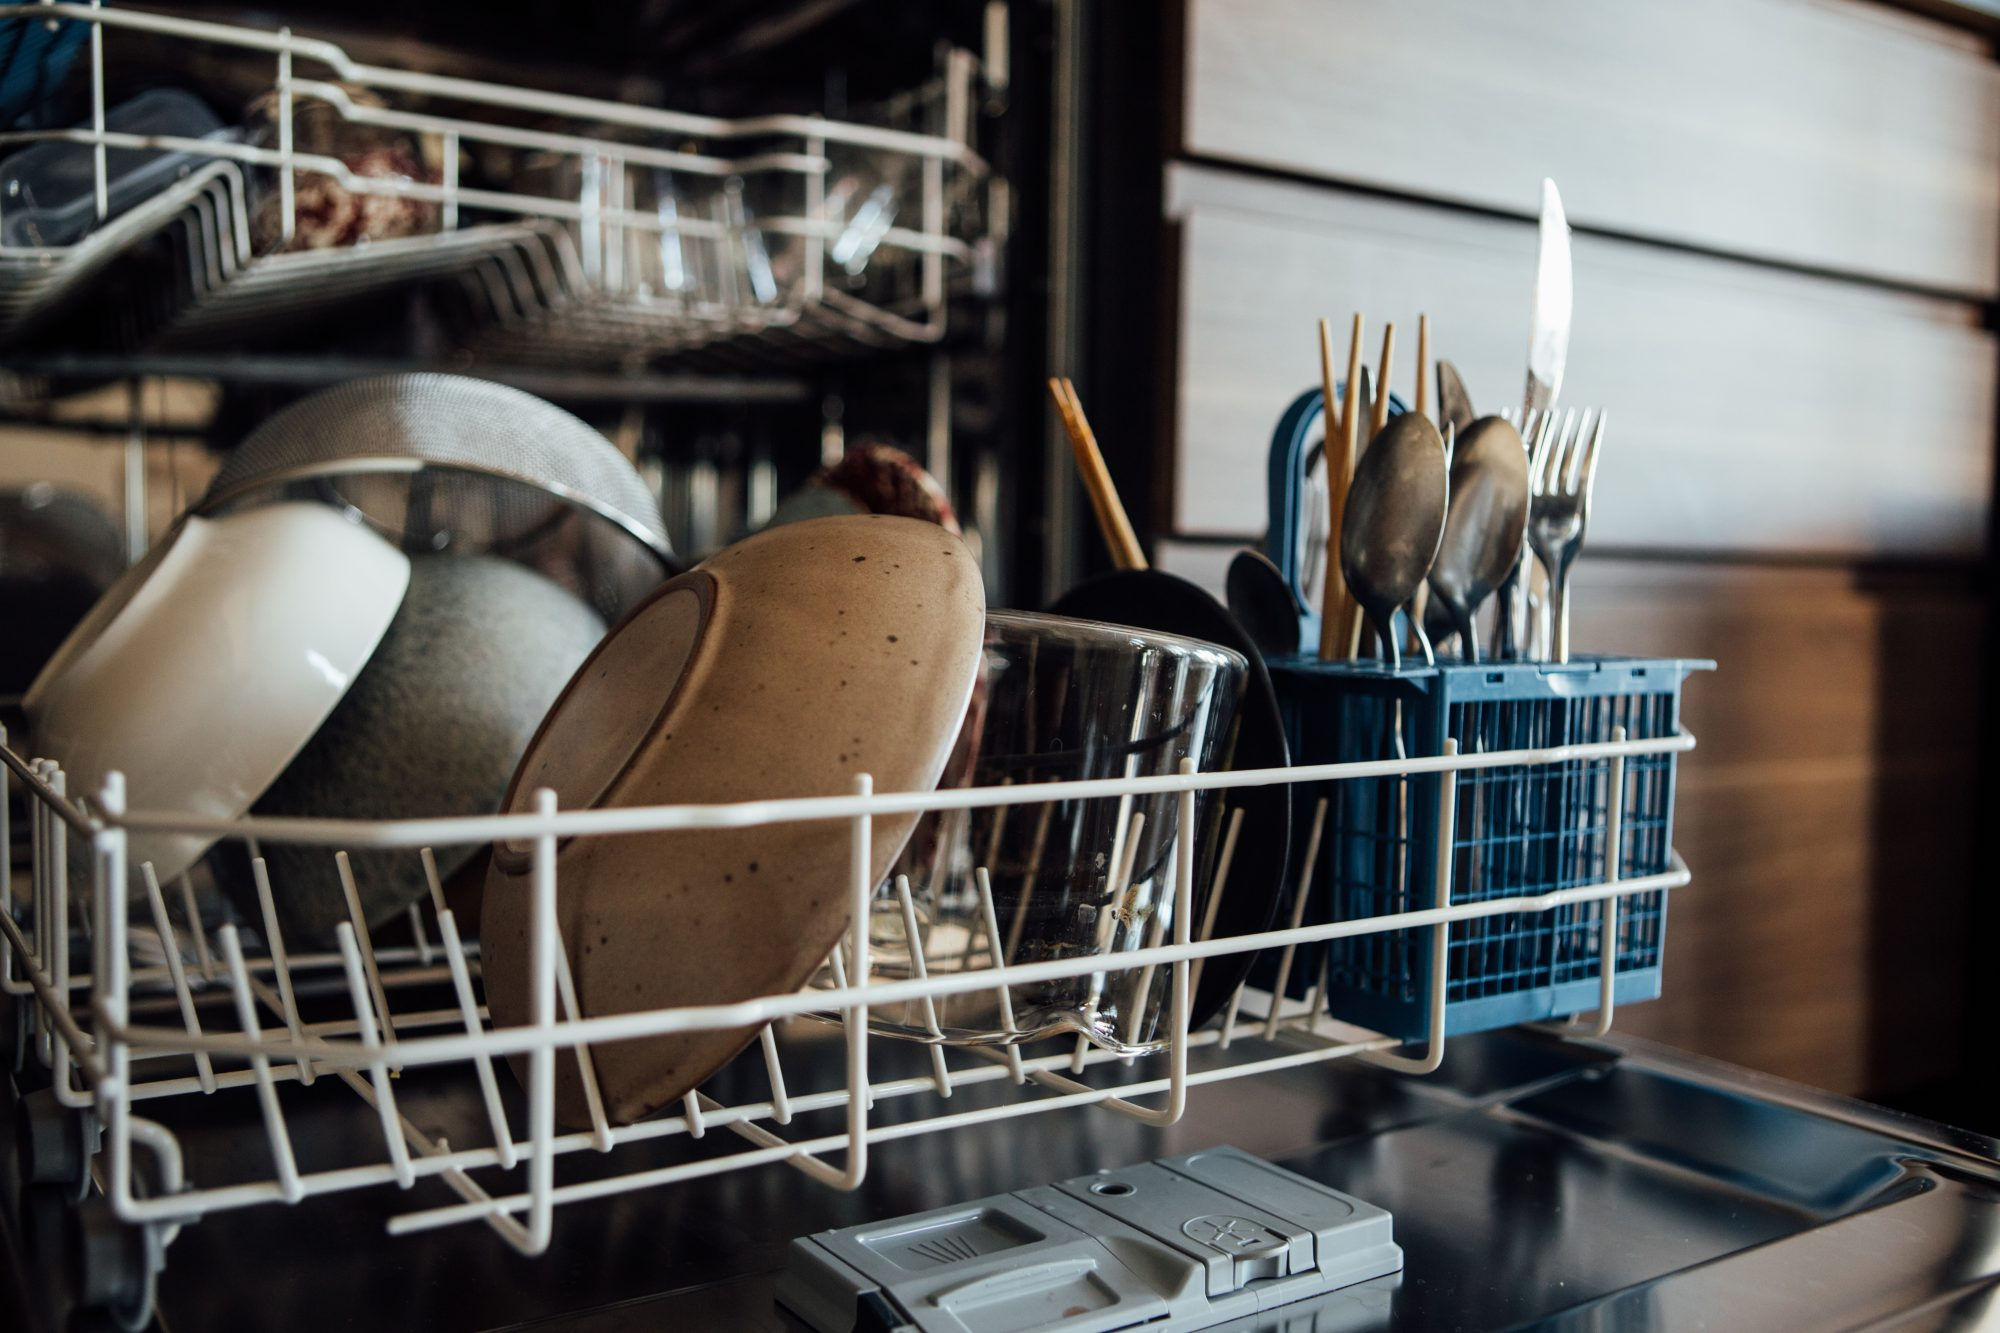 Bowls And Utensils In The Dishwasher